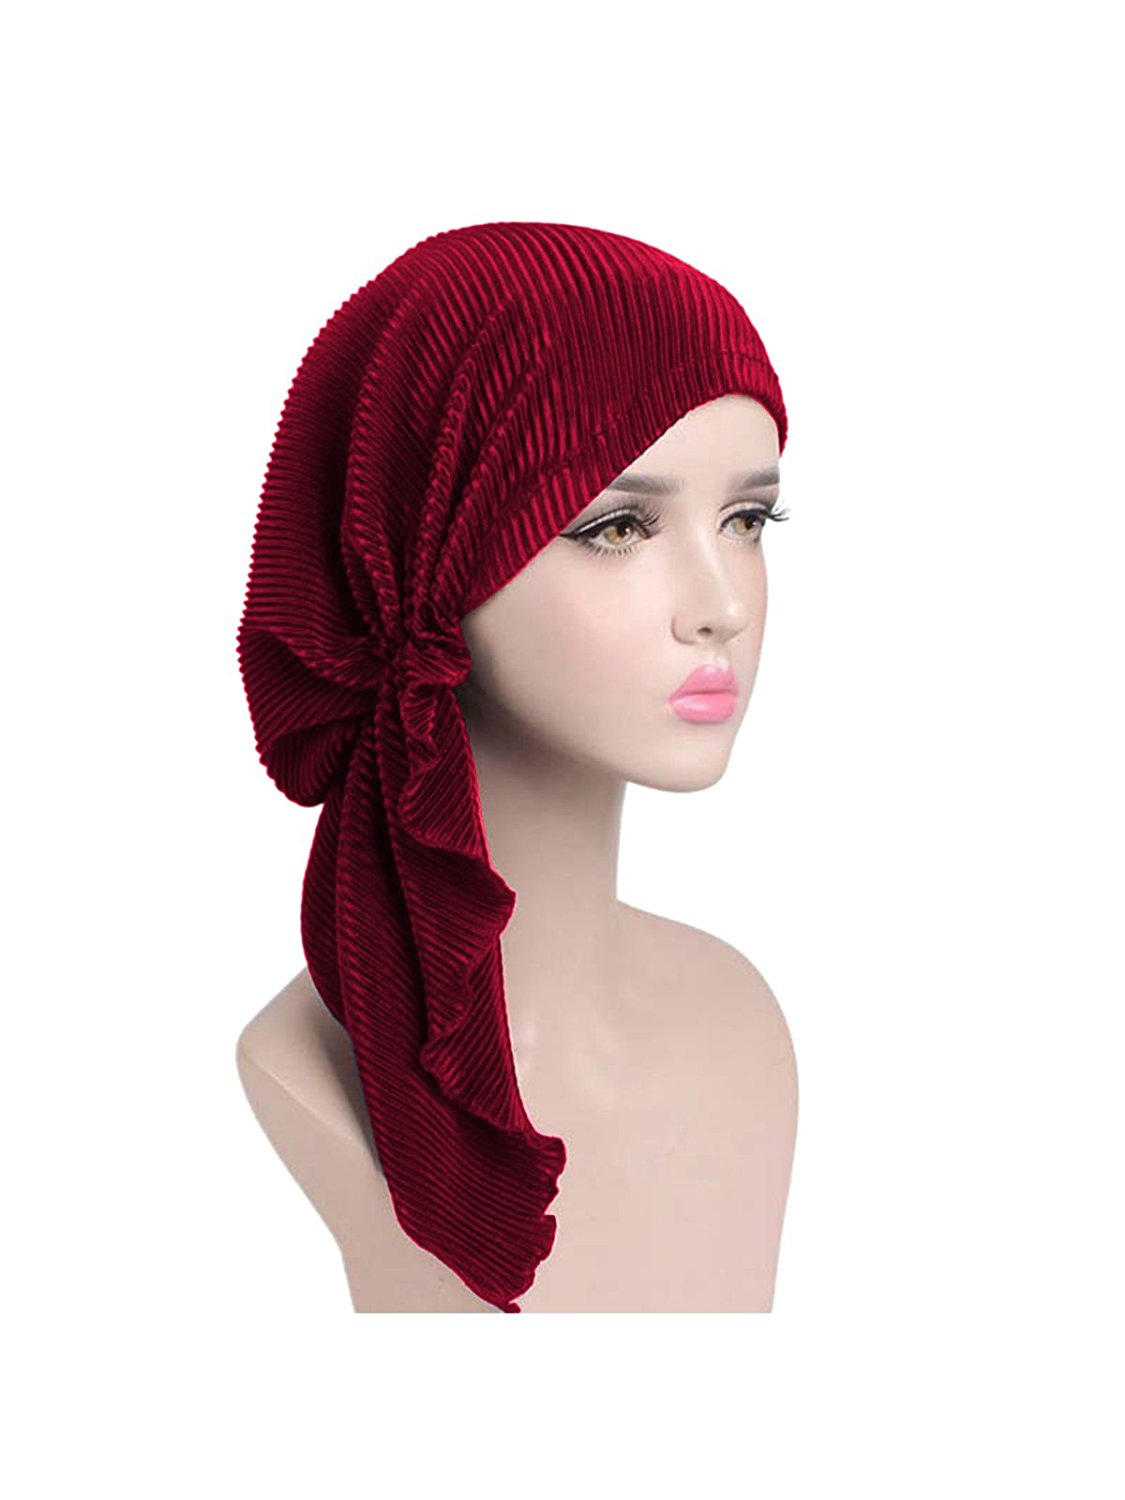 a917acf7f6350 Get Quotations · Zando Womens Chemo Hat Pre-Tied Caps Soft Turban Head  Scarves Headwear For Cancer Patients